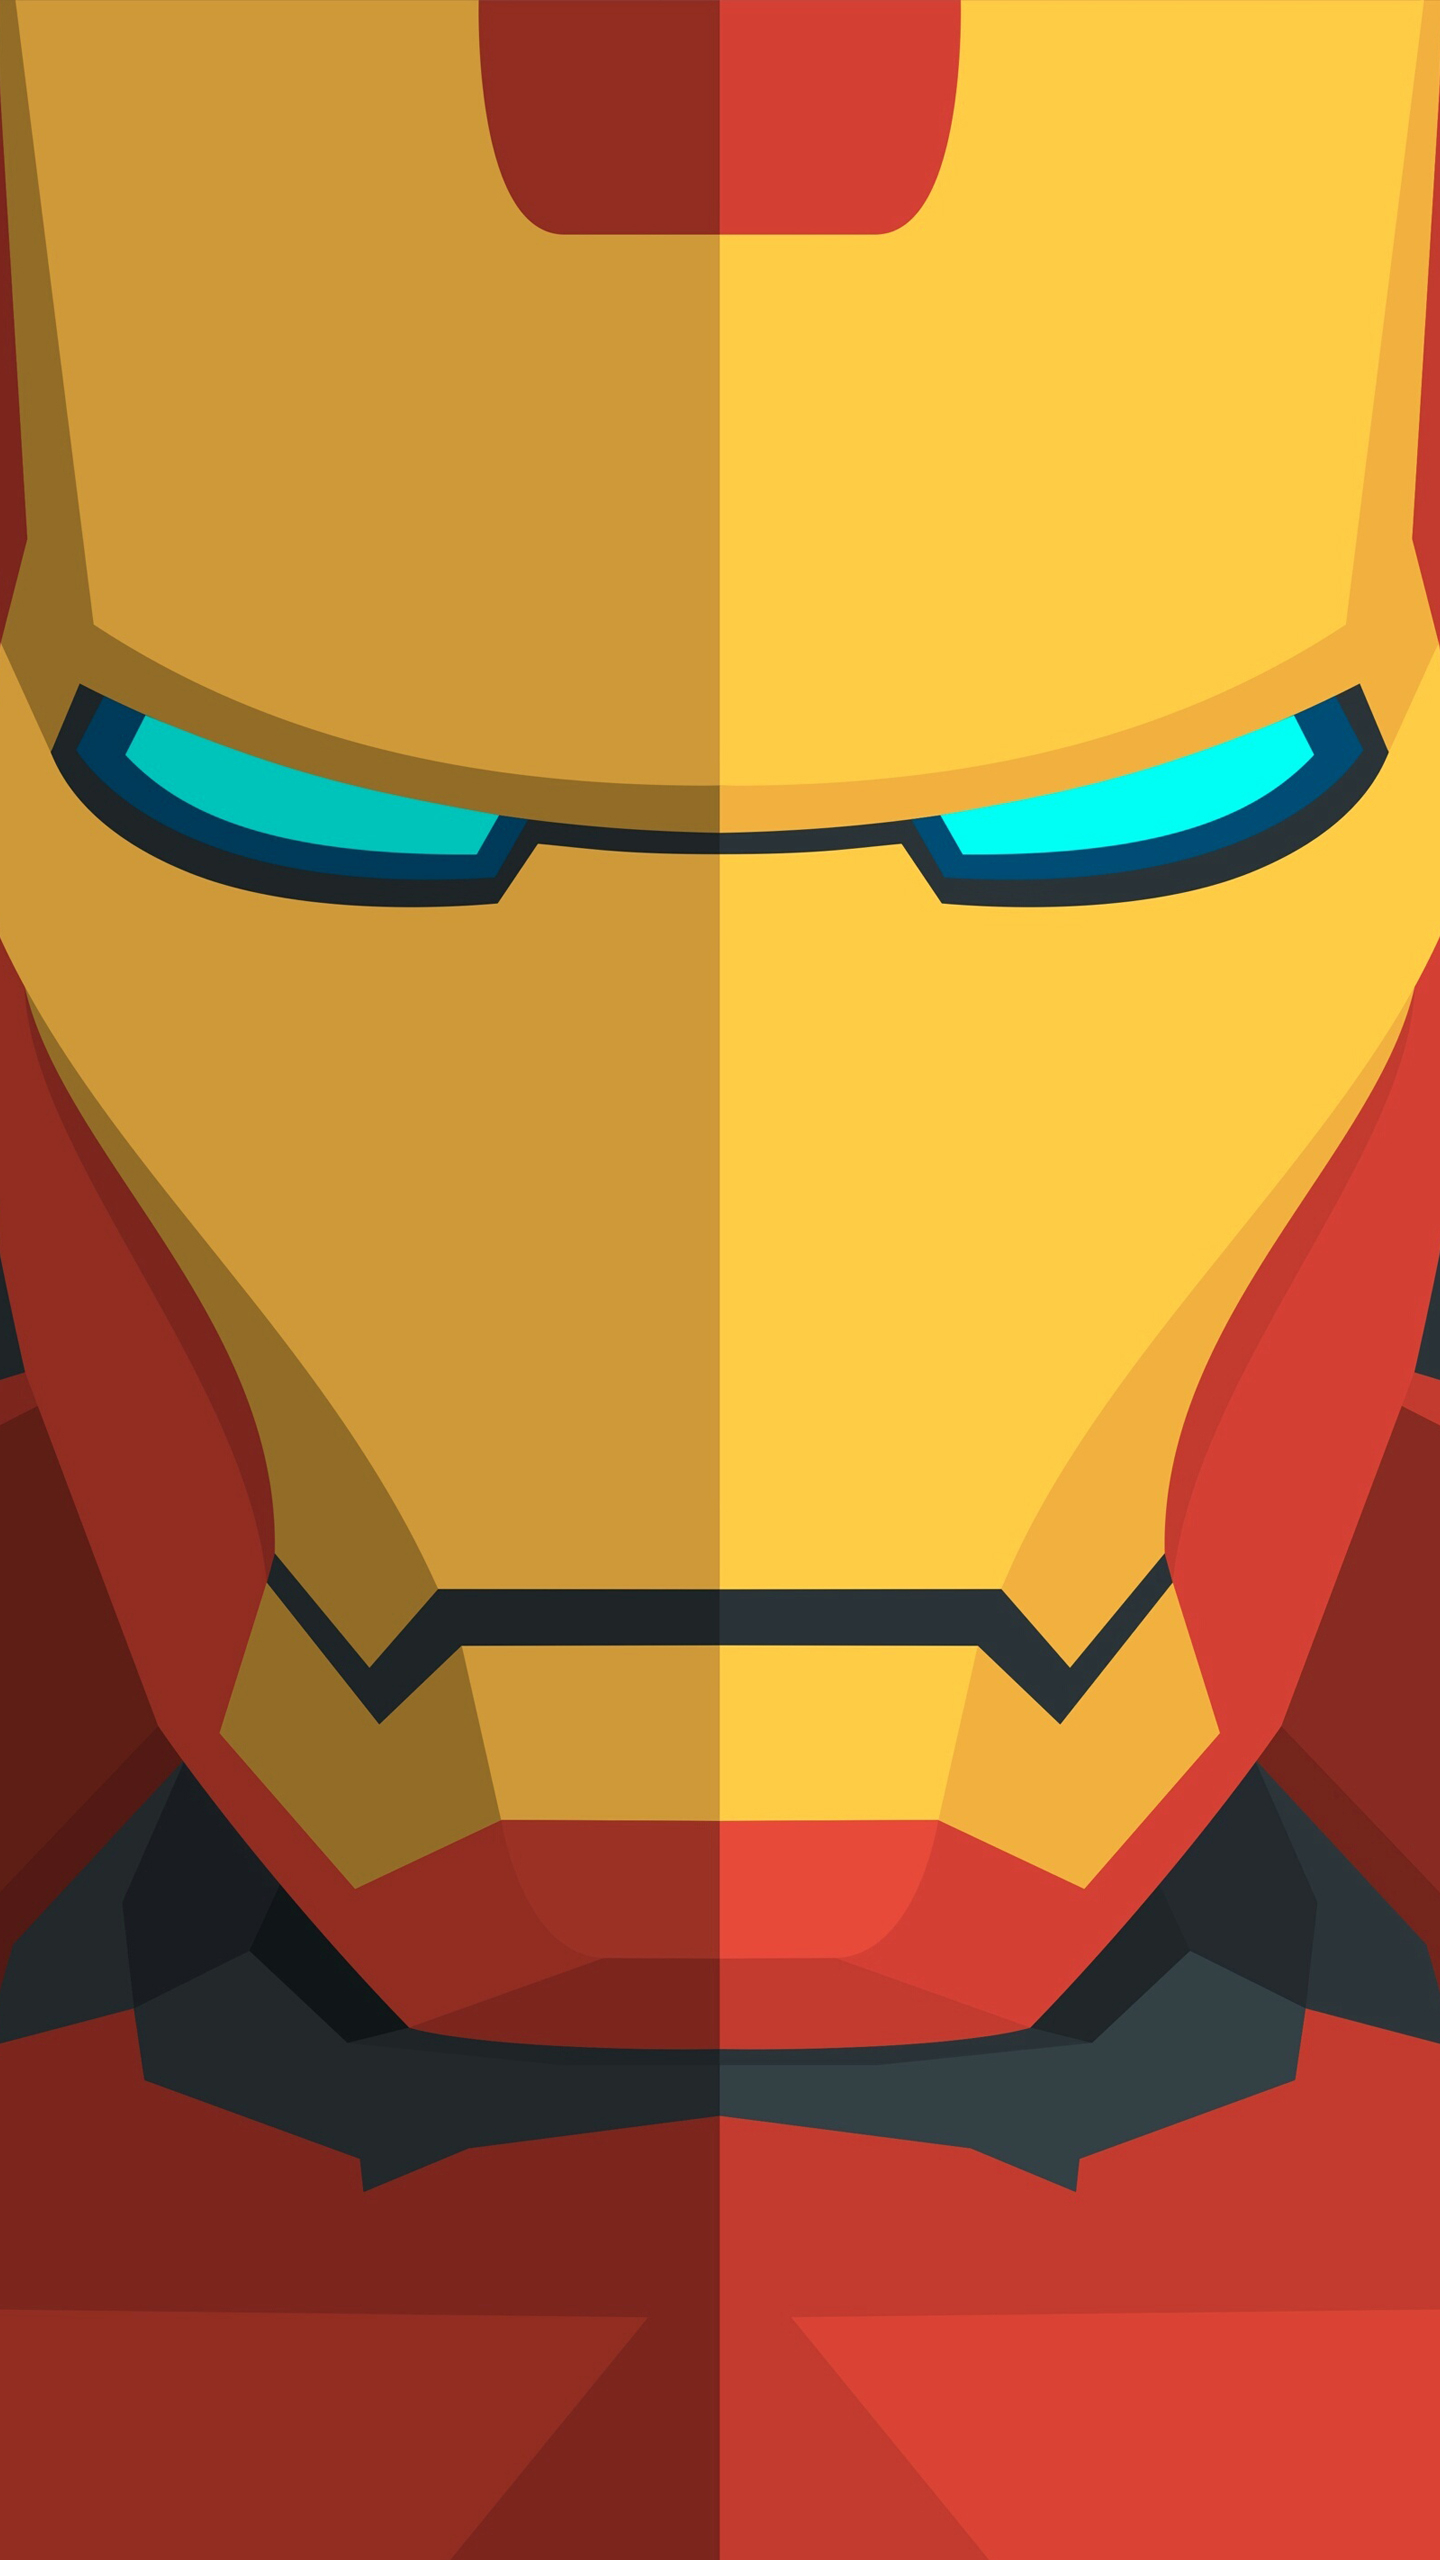 iron man - wallpaper for phone. do you know same or - spiderman